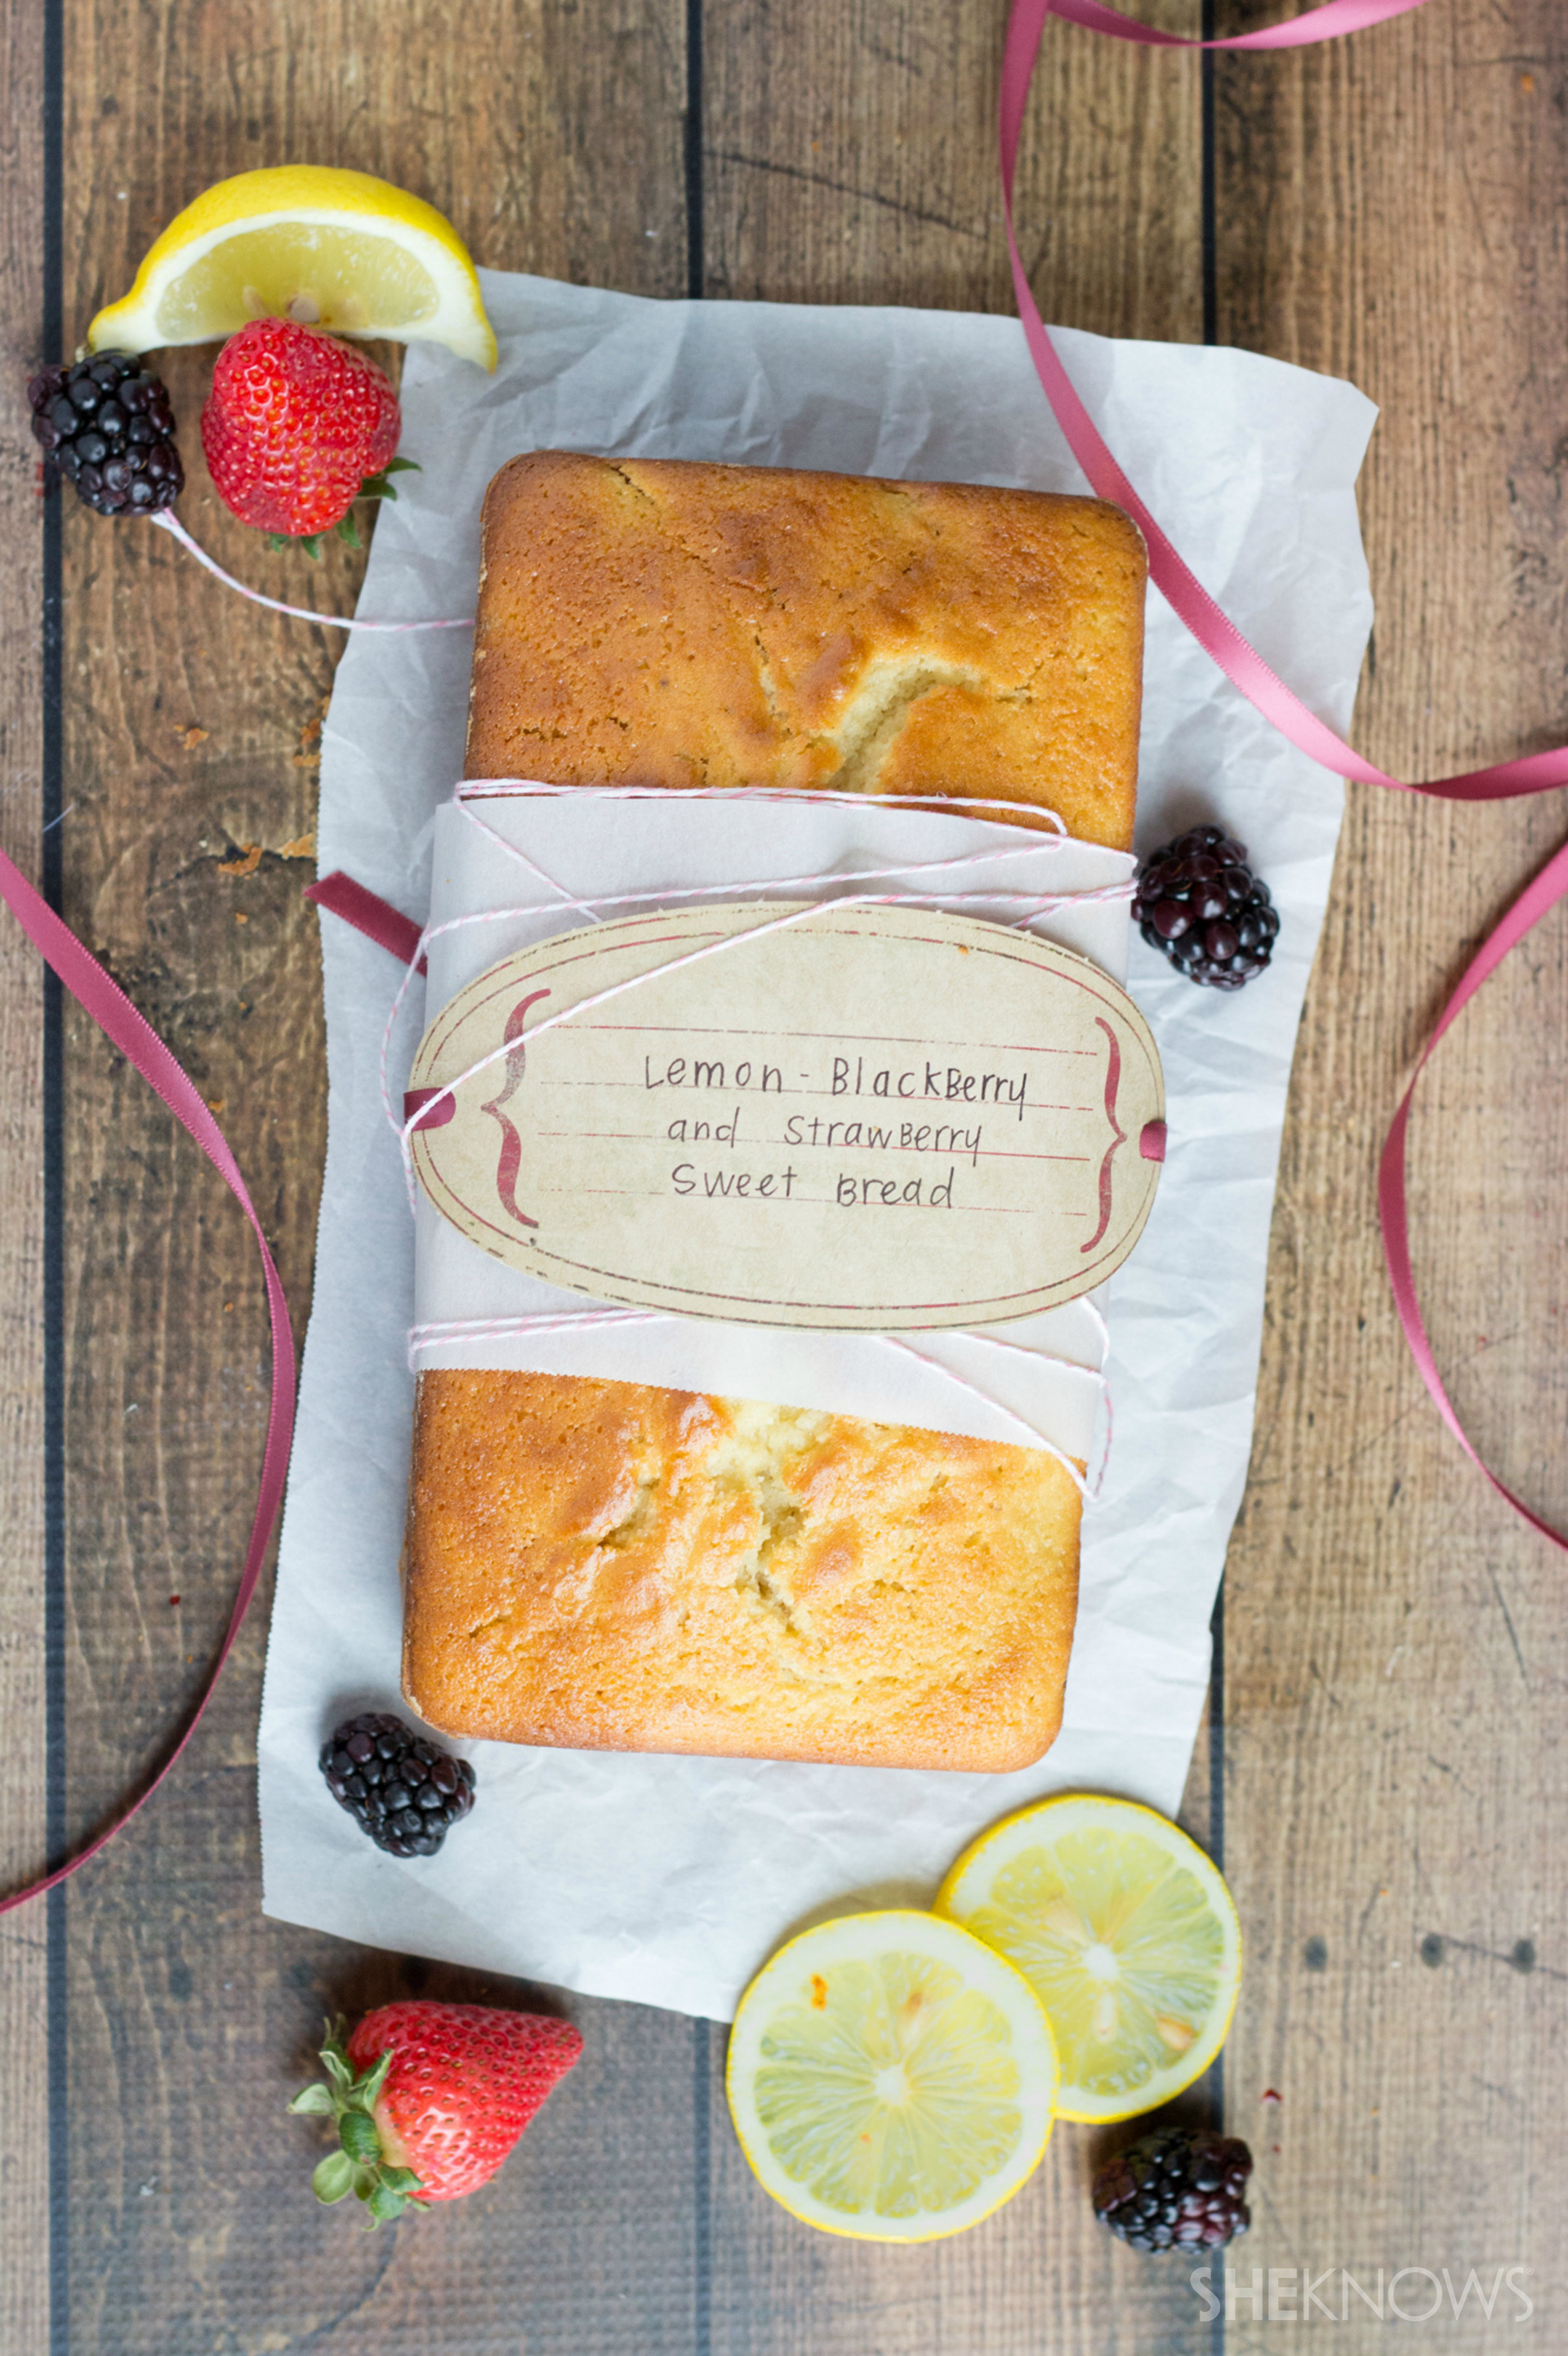 Lemon-Blackberry and Strawberry Sweet Bread